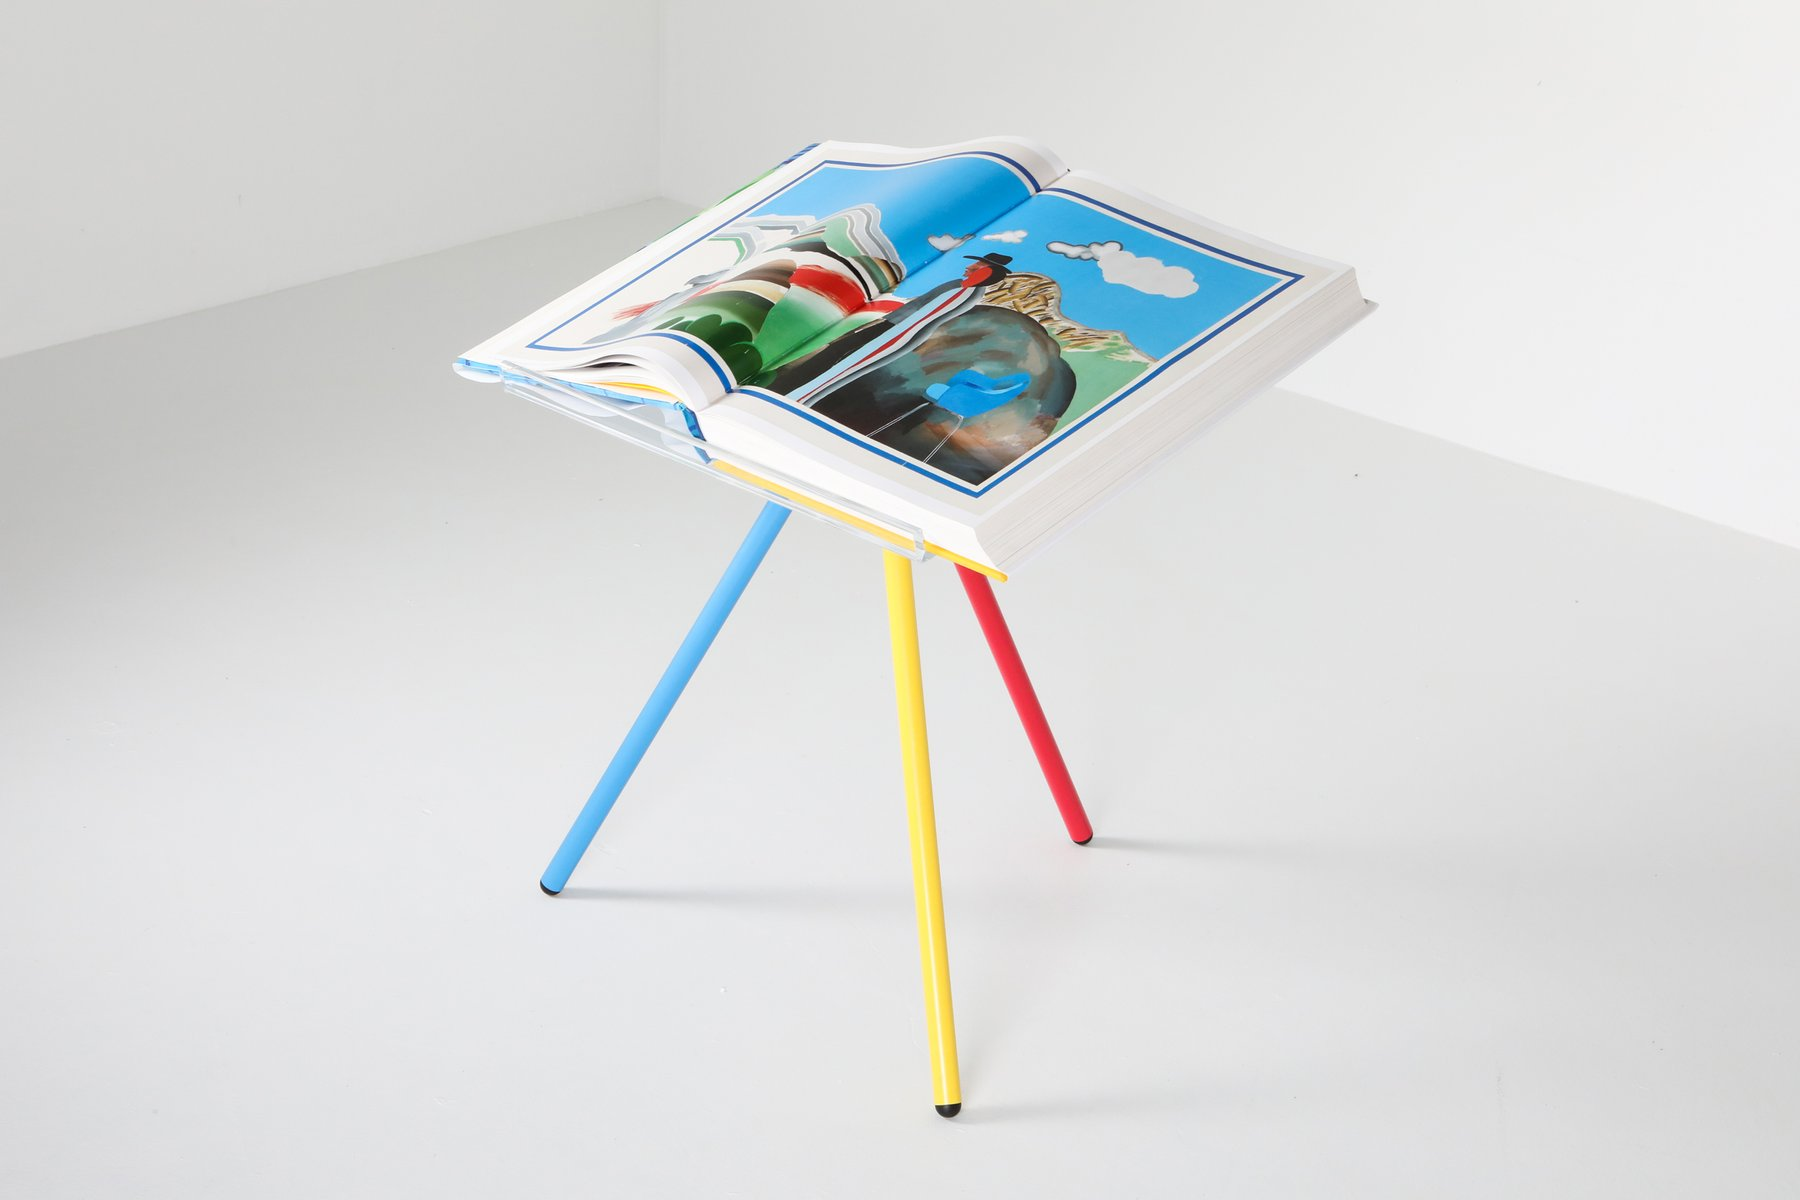 Vintage Sumo Chronology Book And Adjustable Book Stand Set By David Hockney For Sale At Pamono